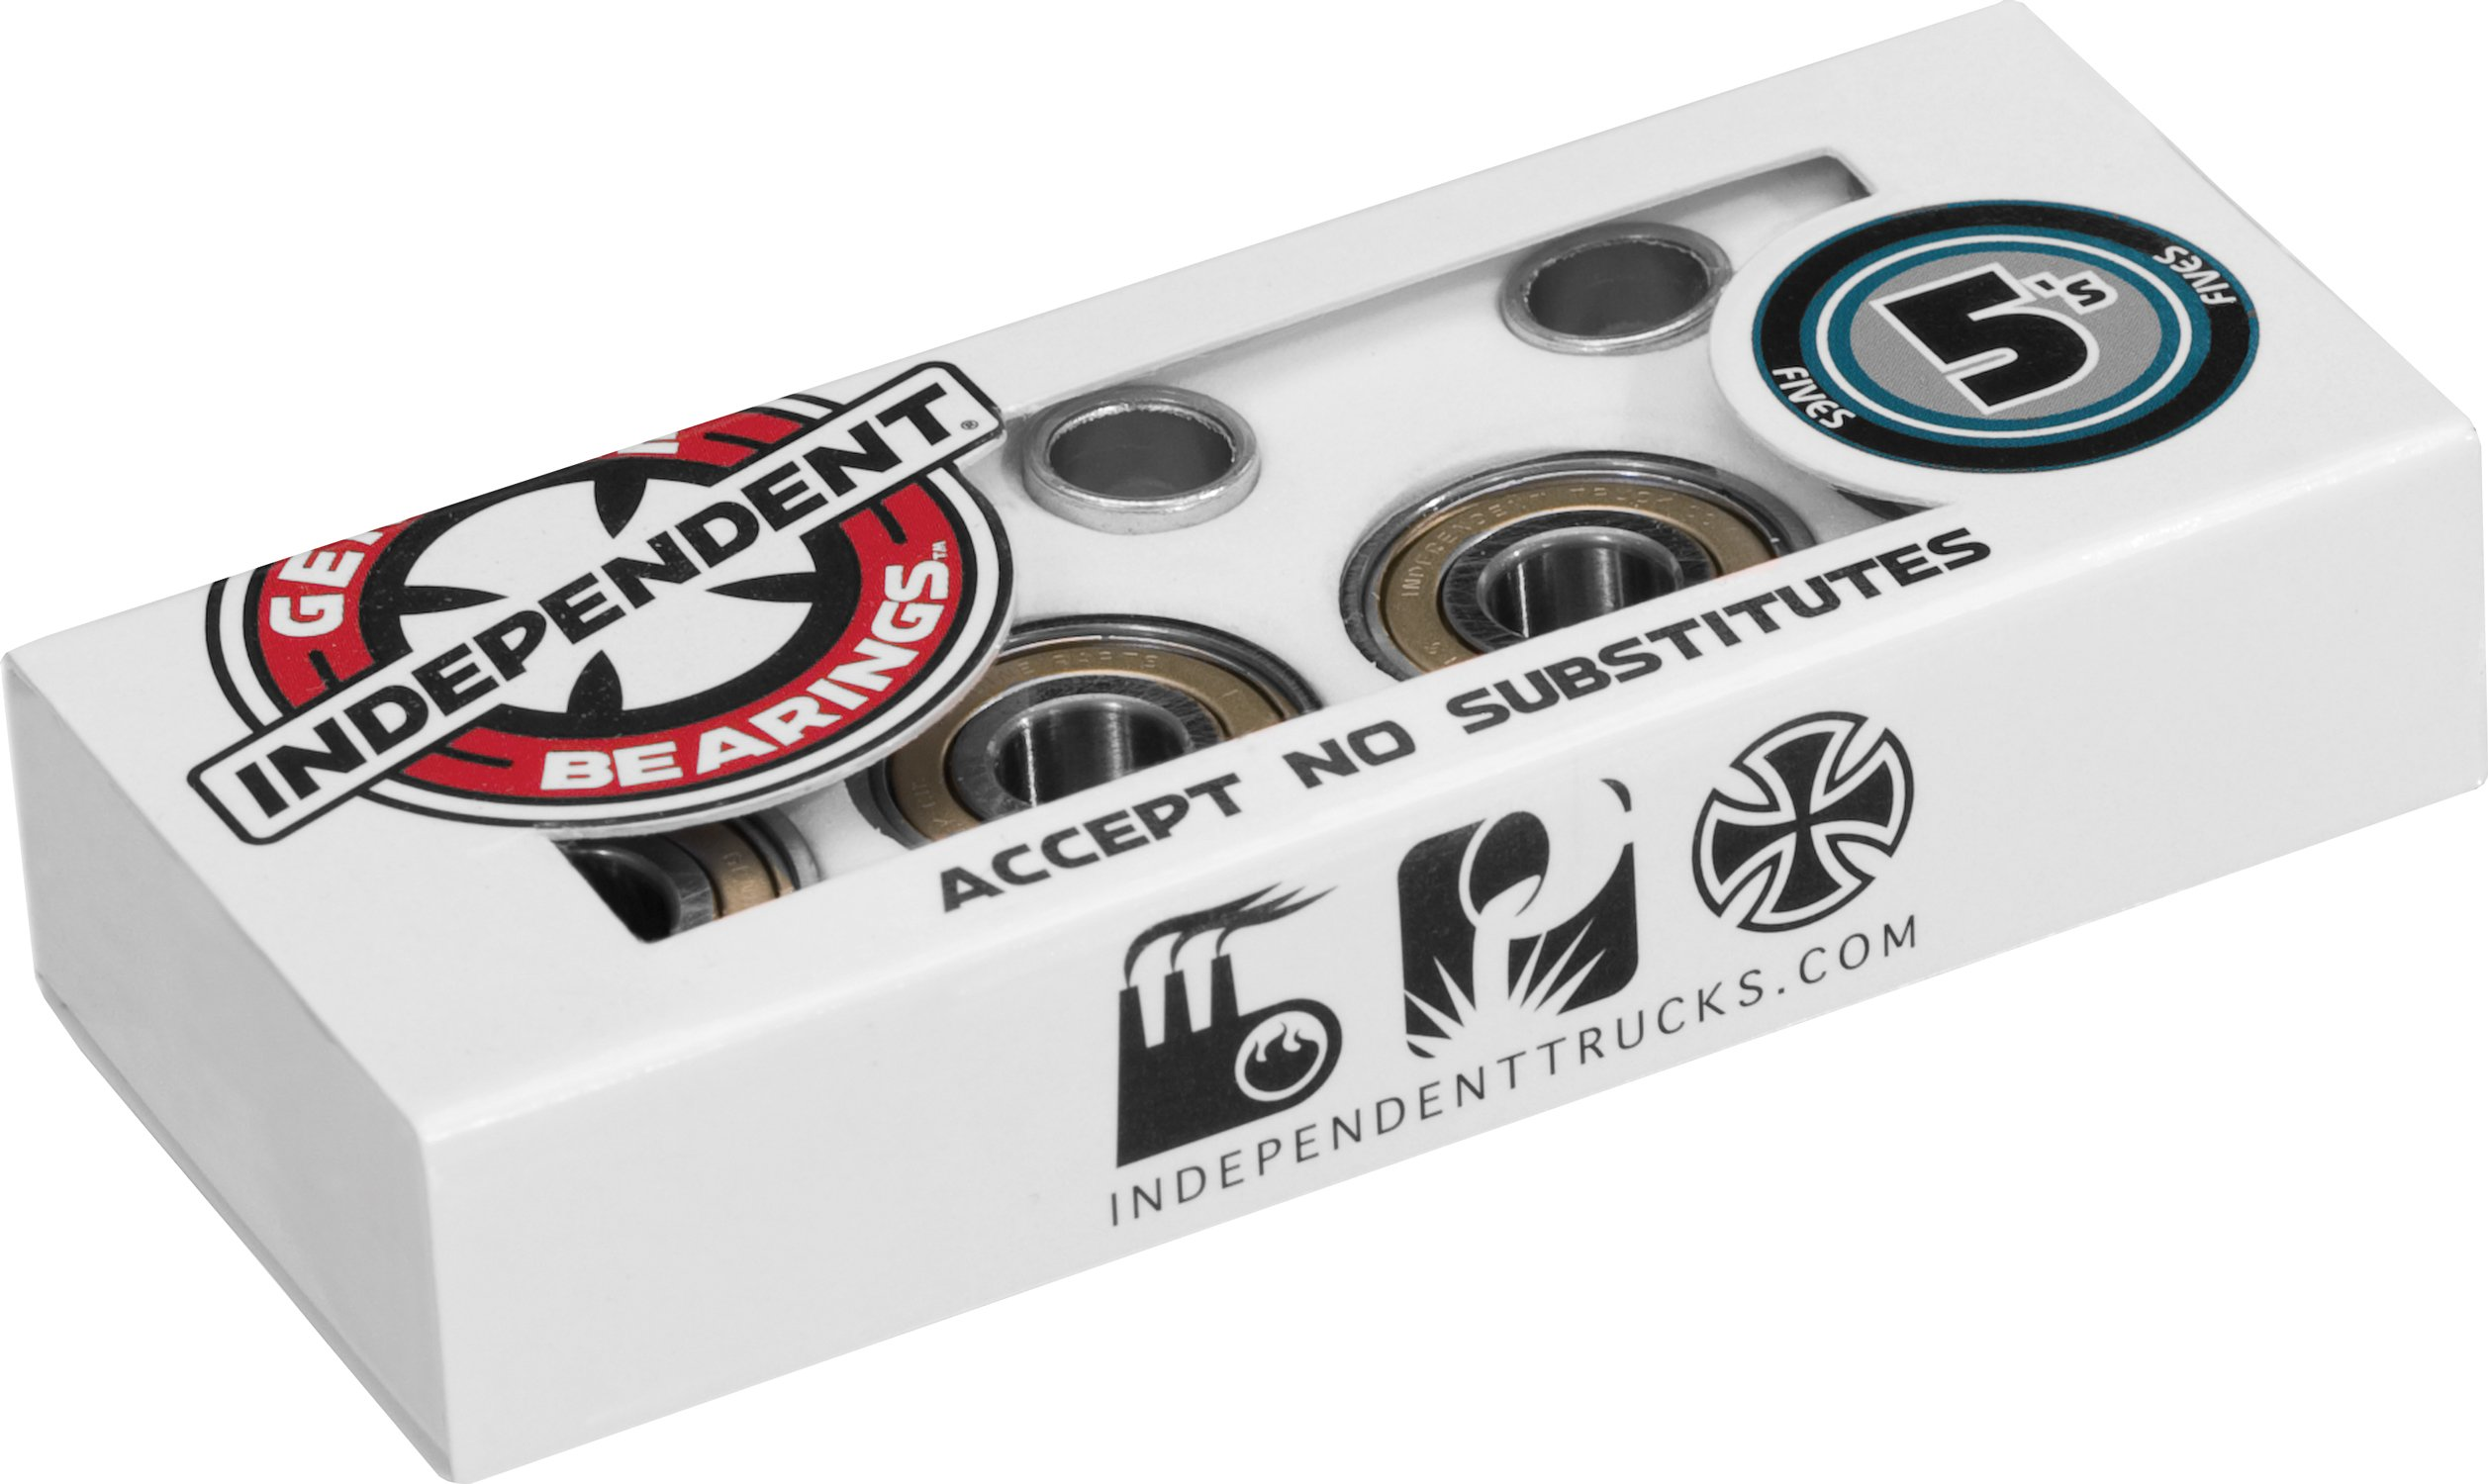 Independent Genuine Parts Bx/8 5S Bearing